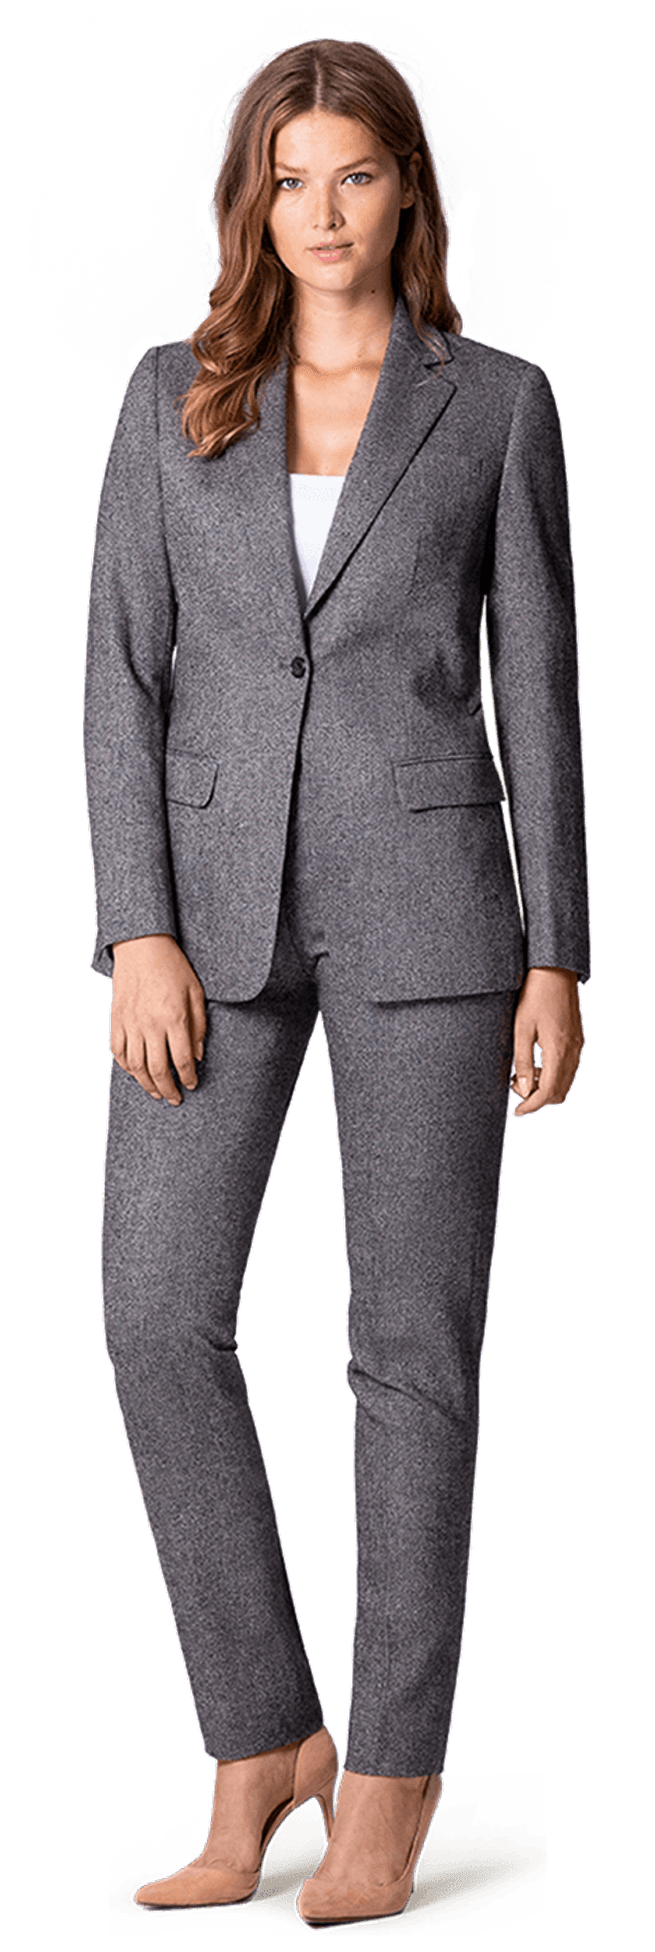 Women S Suits 100 Made To Measure Suits Sumissura